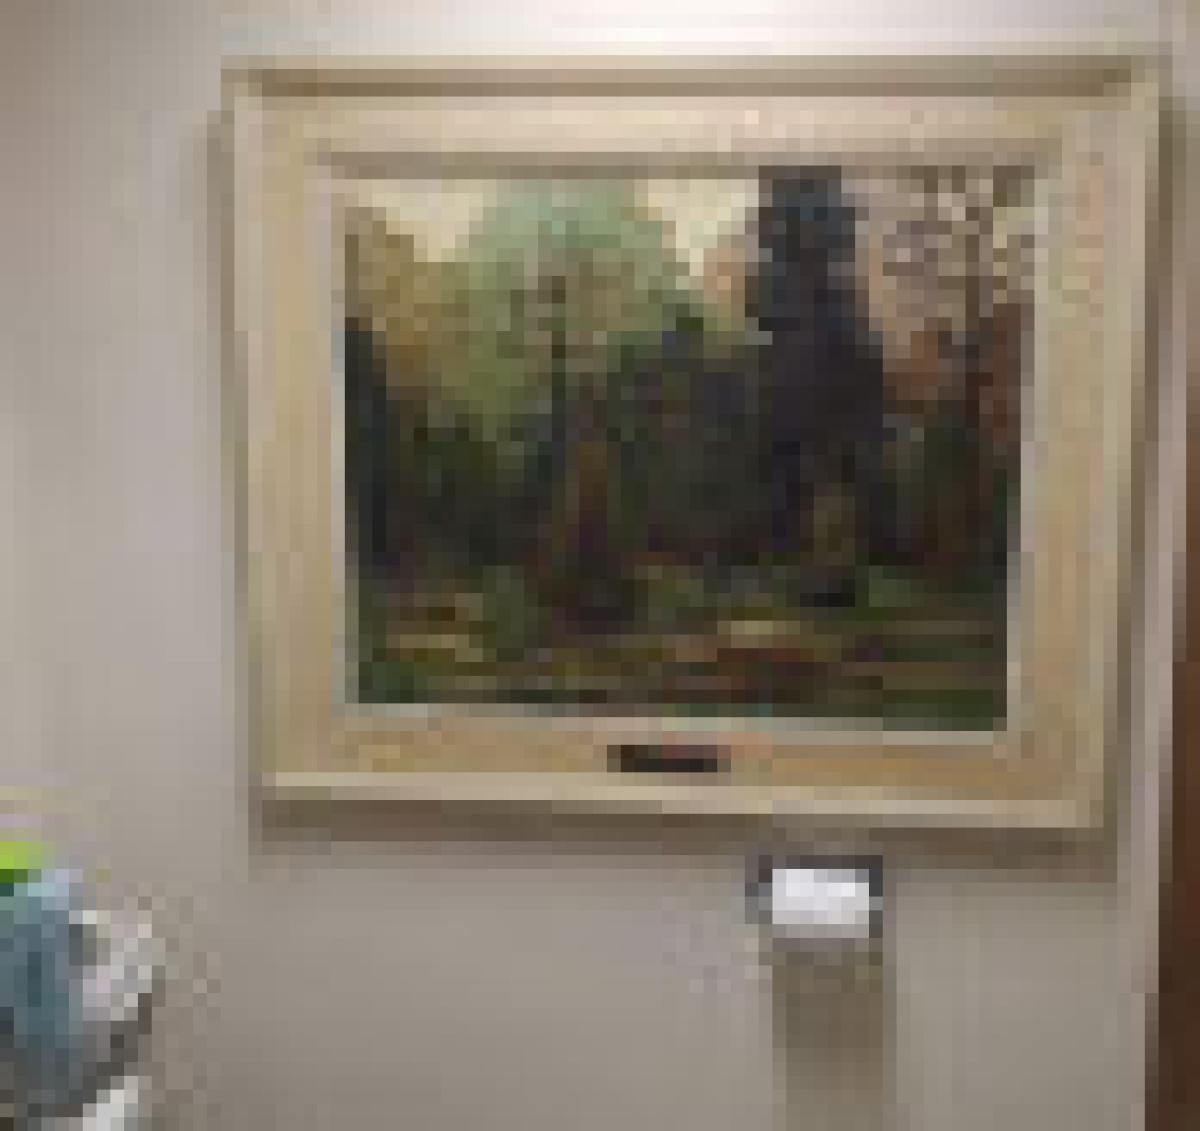 10000 painting kept in school principals washroom while